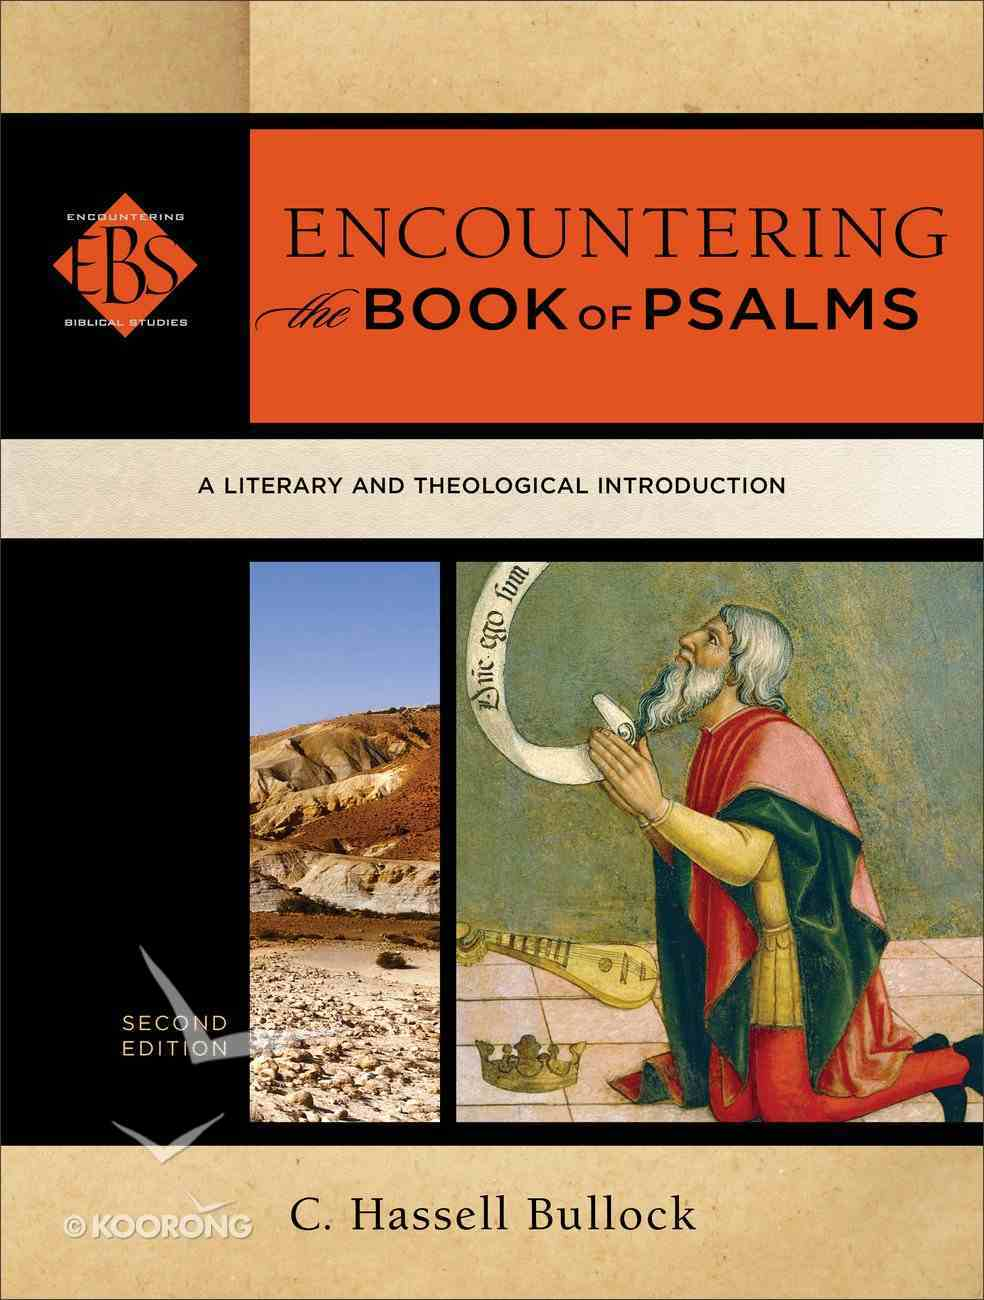 Encountering the Book of Psalms : A Literary and Theological Introduction (2nd Edition) (Encountering Biblical Studies Series) Paperback